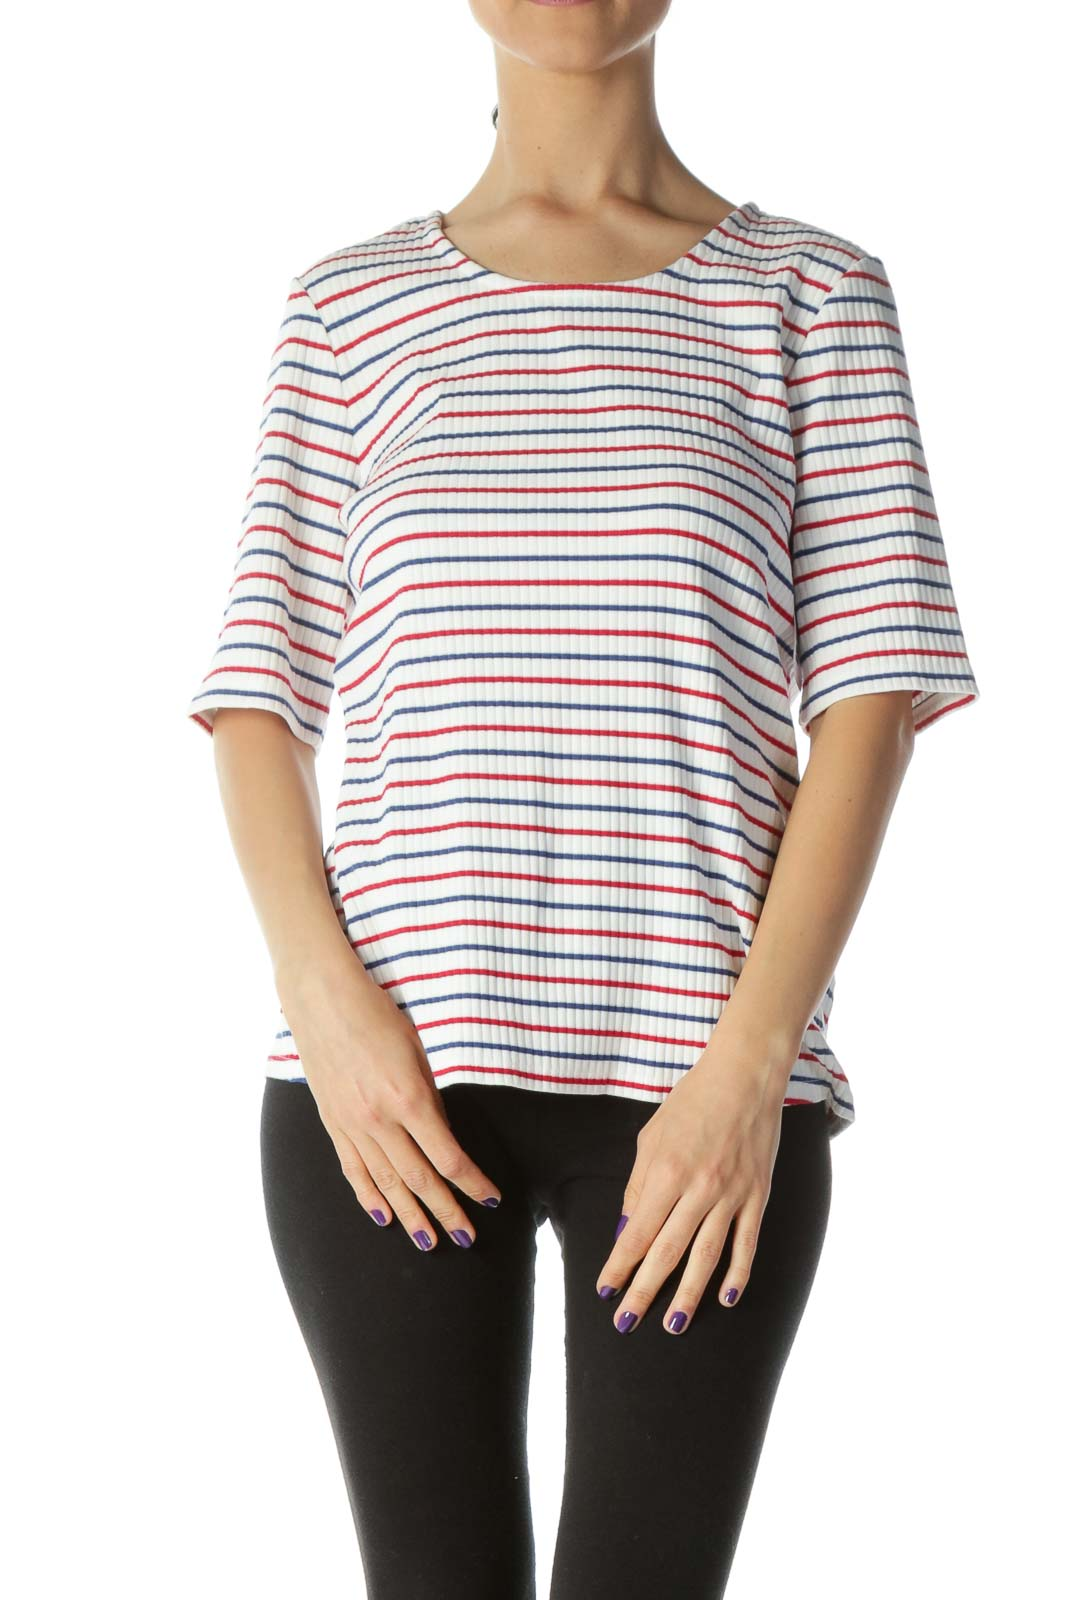 Red White & Blue Striped Ribbed Short Sleeve Knit Top Front